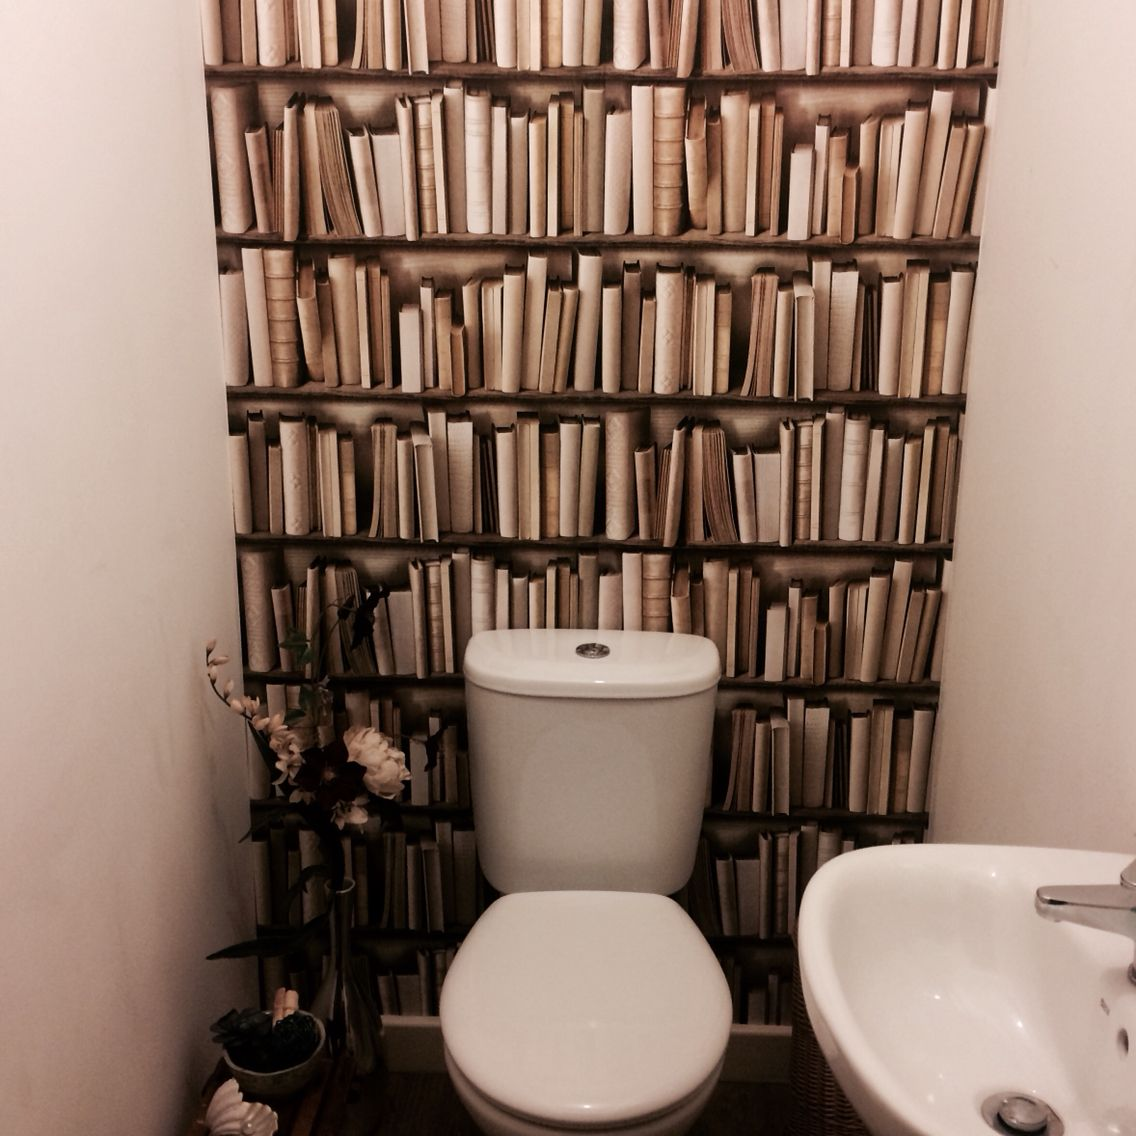 Book Wallpaper In Our Downstairs Toilet